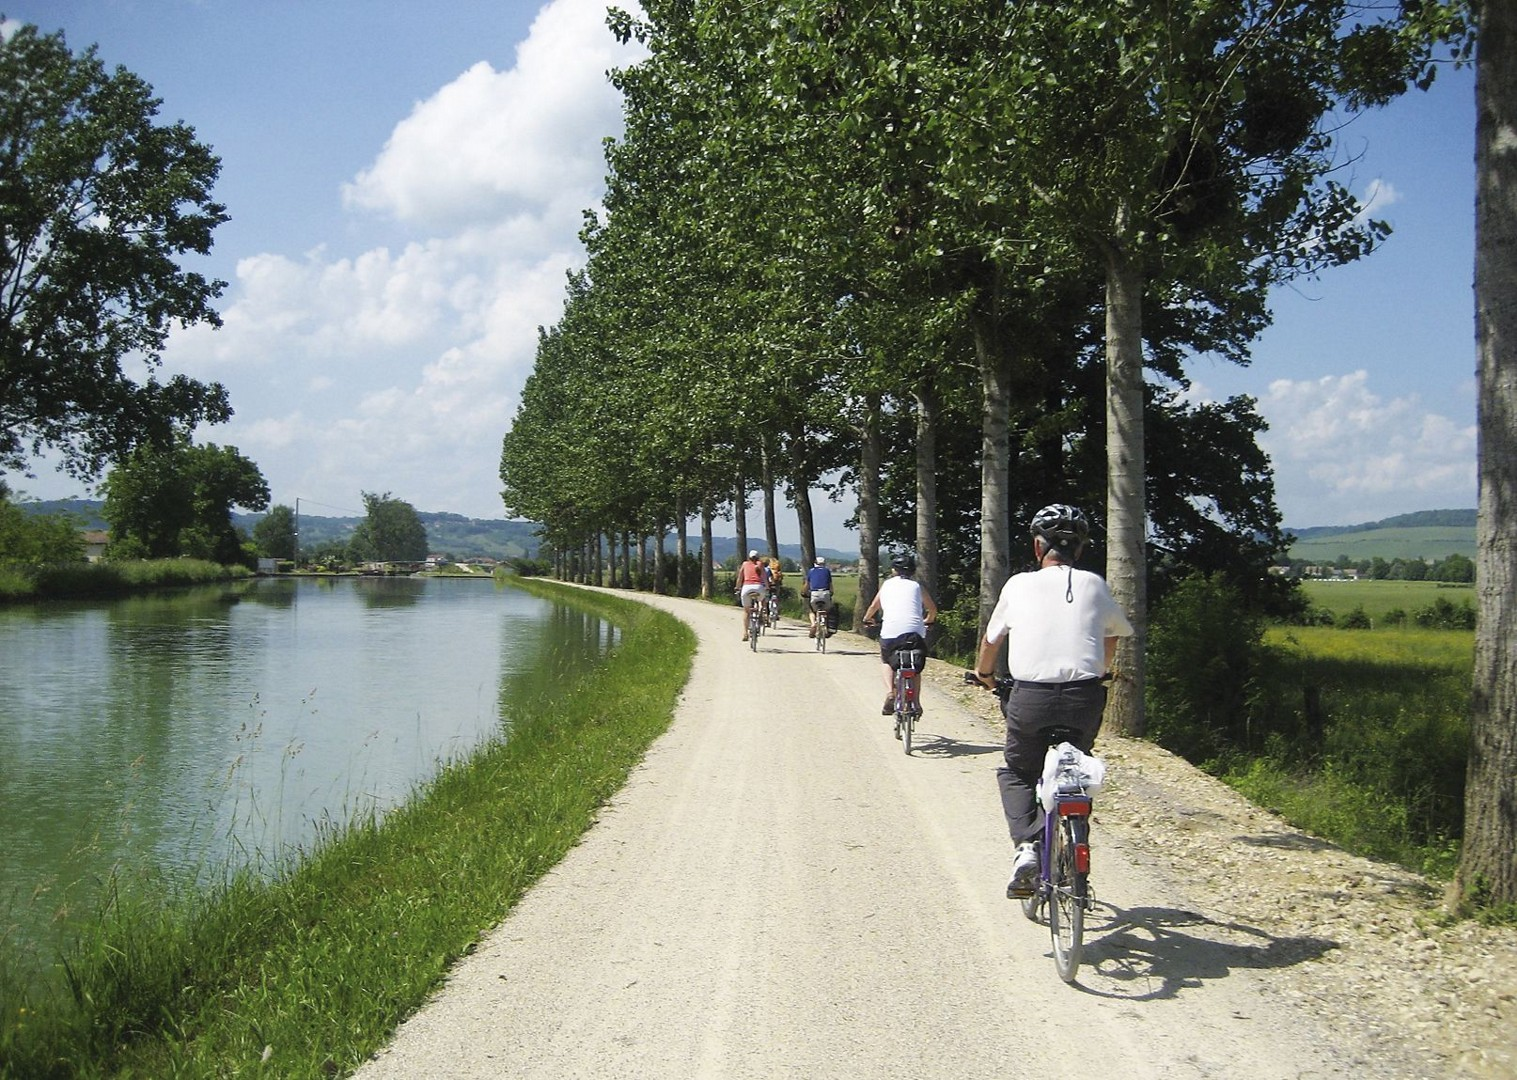 caves-and-canals-leisure-cycling-holiday-in-france.jpg - France - Burgundy - Caves and Canals - Self-Guided Leisure Cycling Holiday - Leisure Cycling